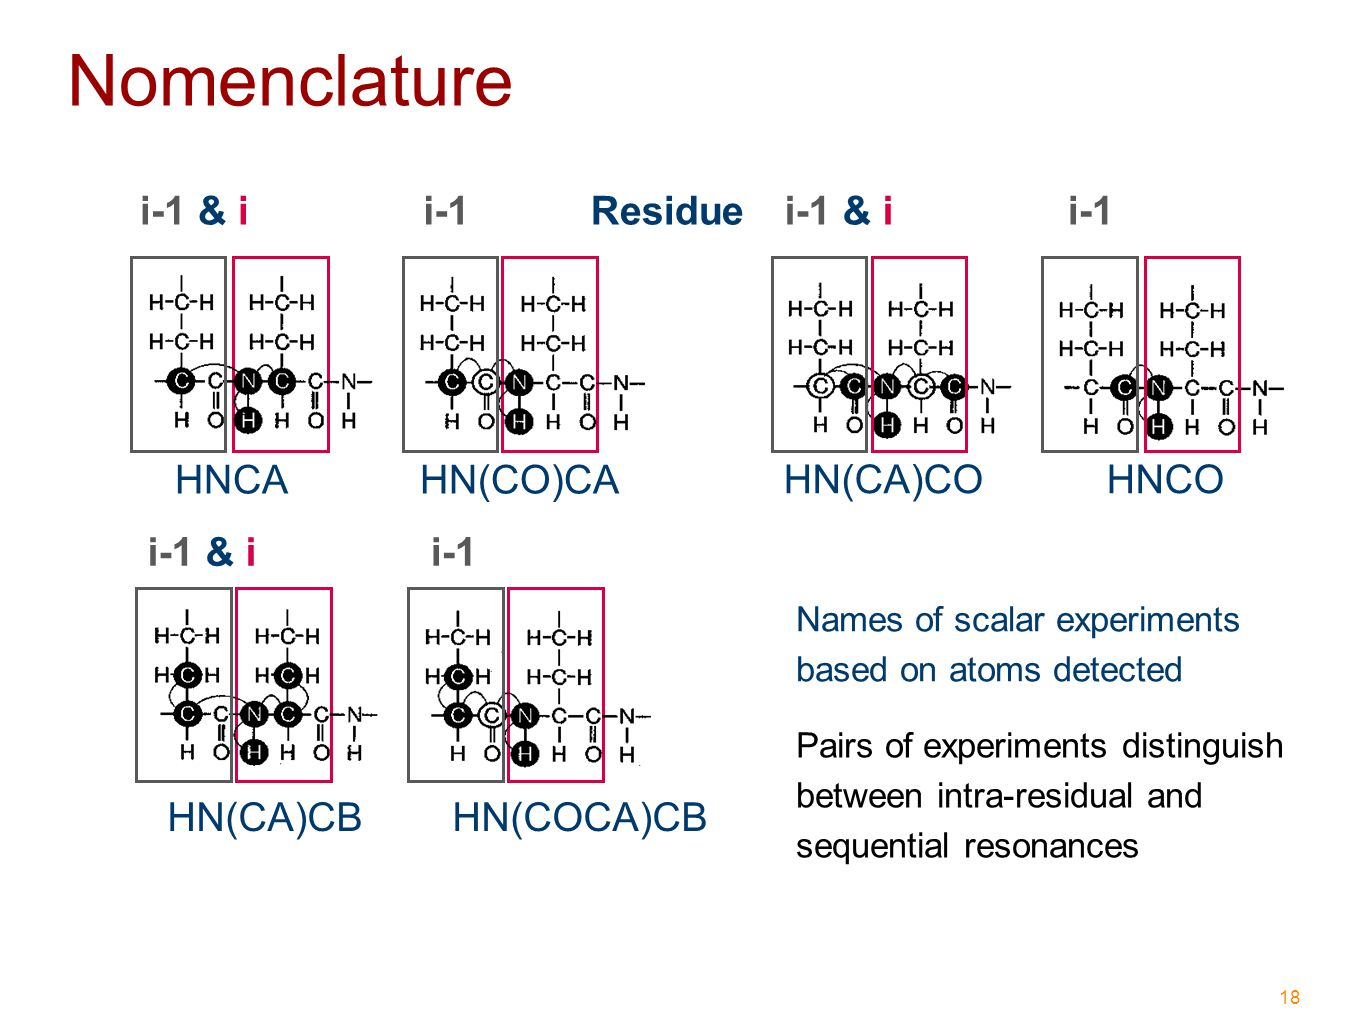 18 Nomenclature Names of scalar experiments based on atoms detected HNCA HN(CO)CA HN(CA)CO HNCO HN(CA)CB HN(COCA)CB Pairs of experiments distinguish between intra-residual and sequential resonances Residuei-1 & ii-1i-1 & ii-1 i-1 & ii-1